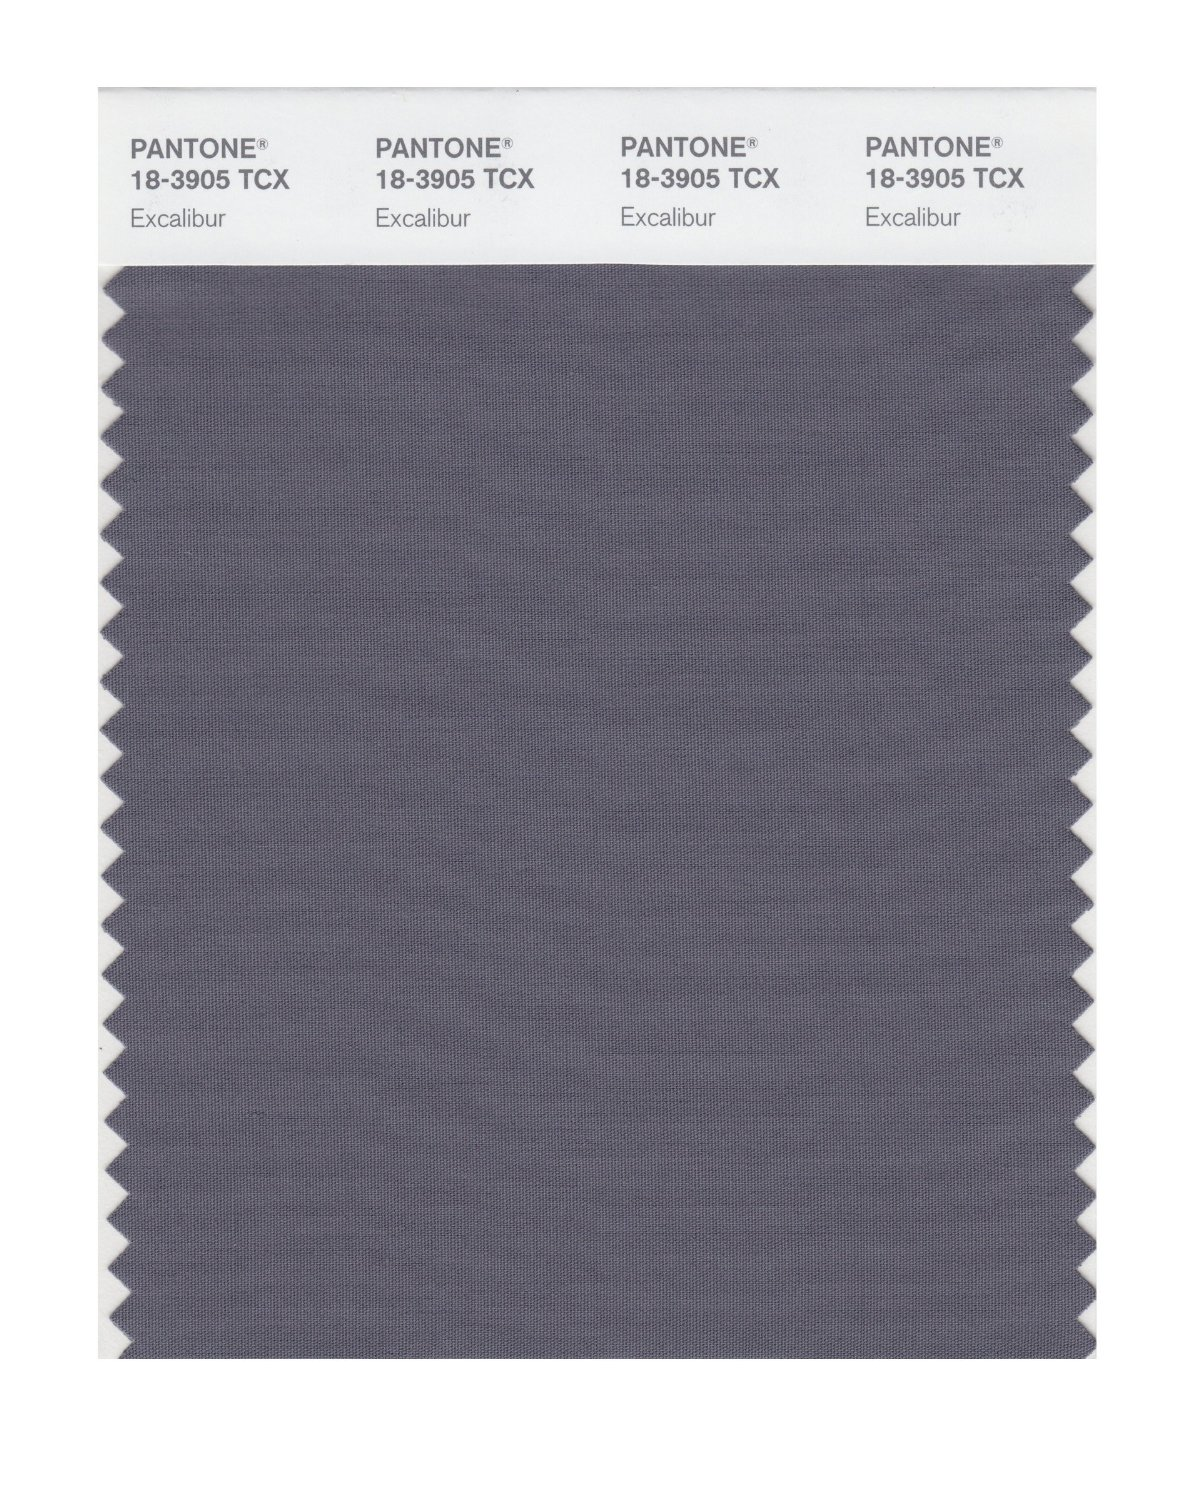 Pantone Smart Swatch 18-3905 Excalibur